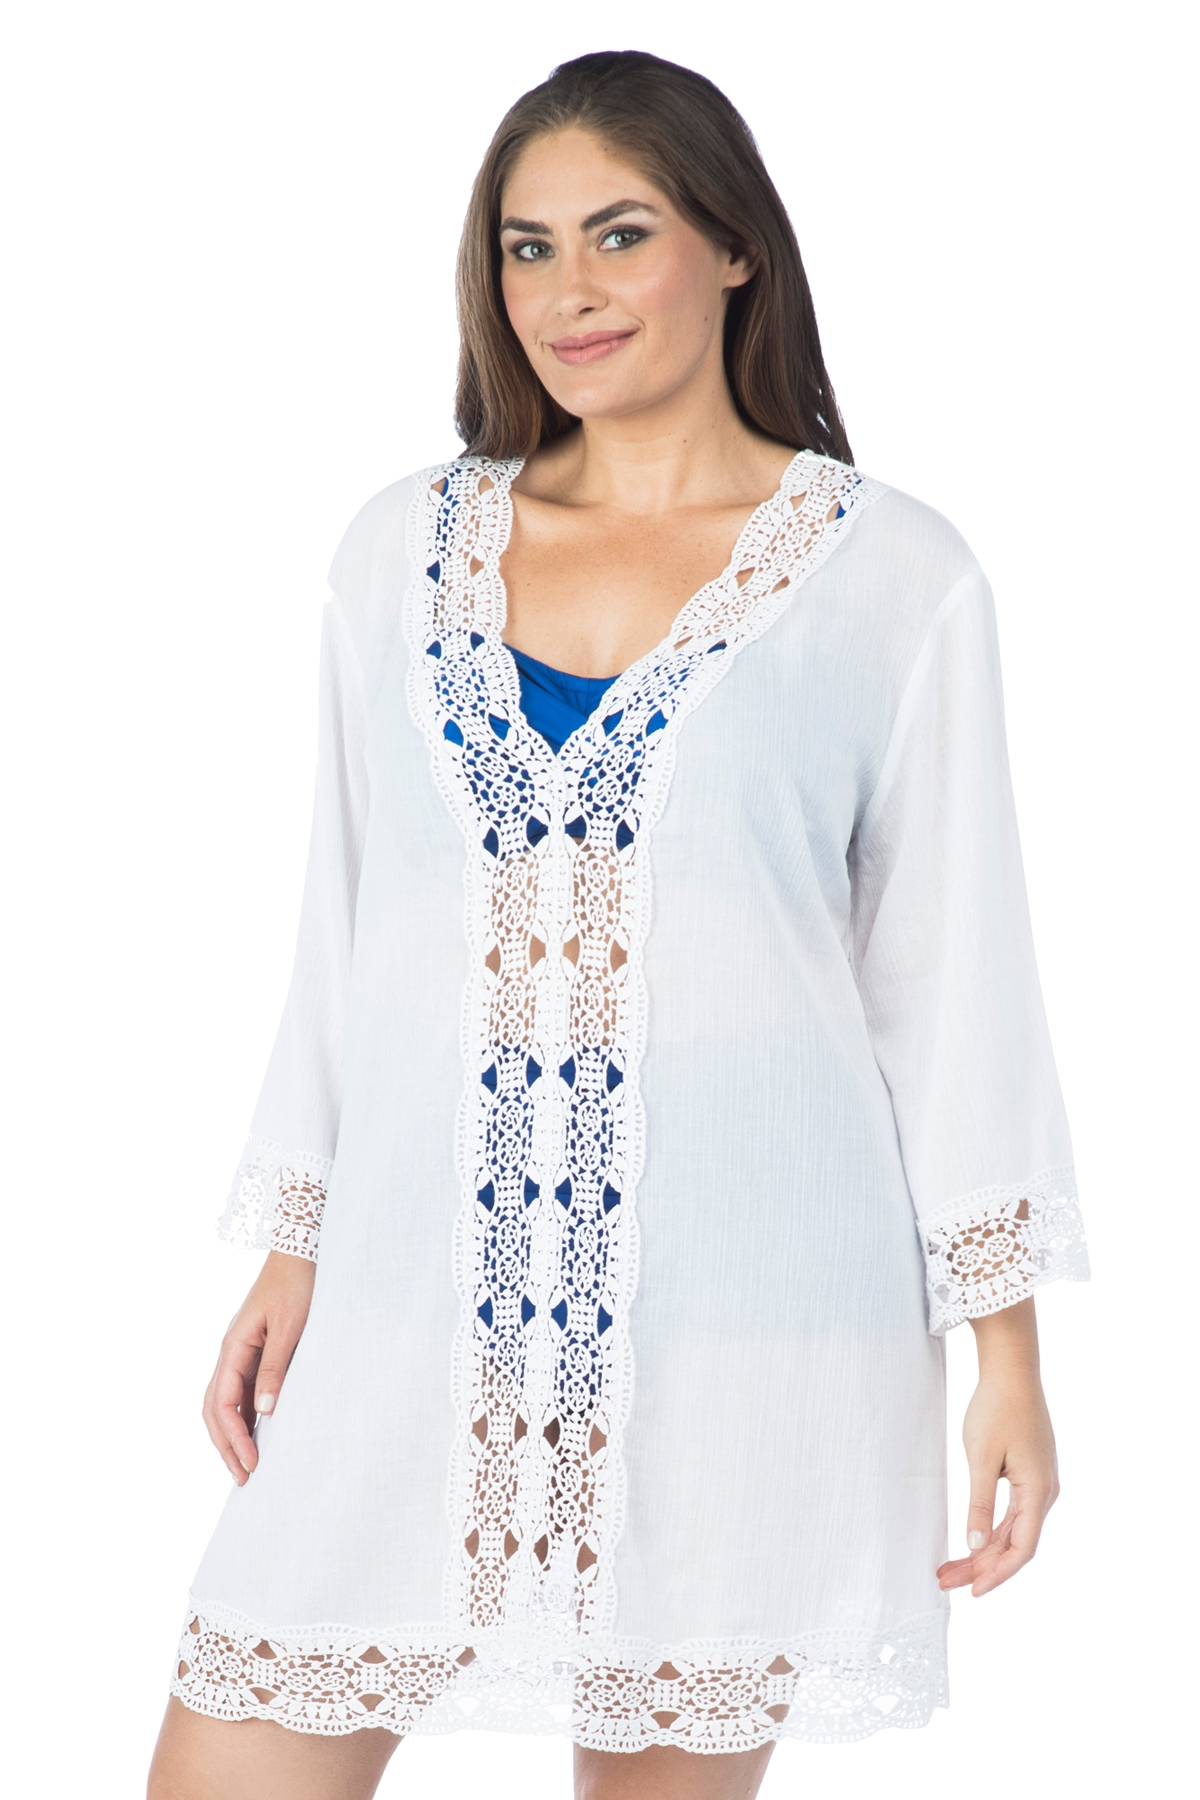 021fe52cfc La Blanca Women's Plus Size Island Fare V Neck Tunic Swim Cover Up